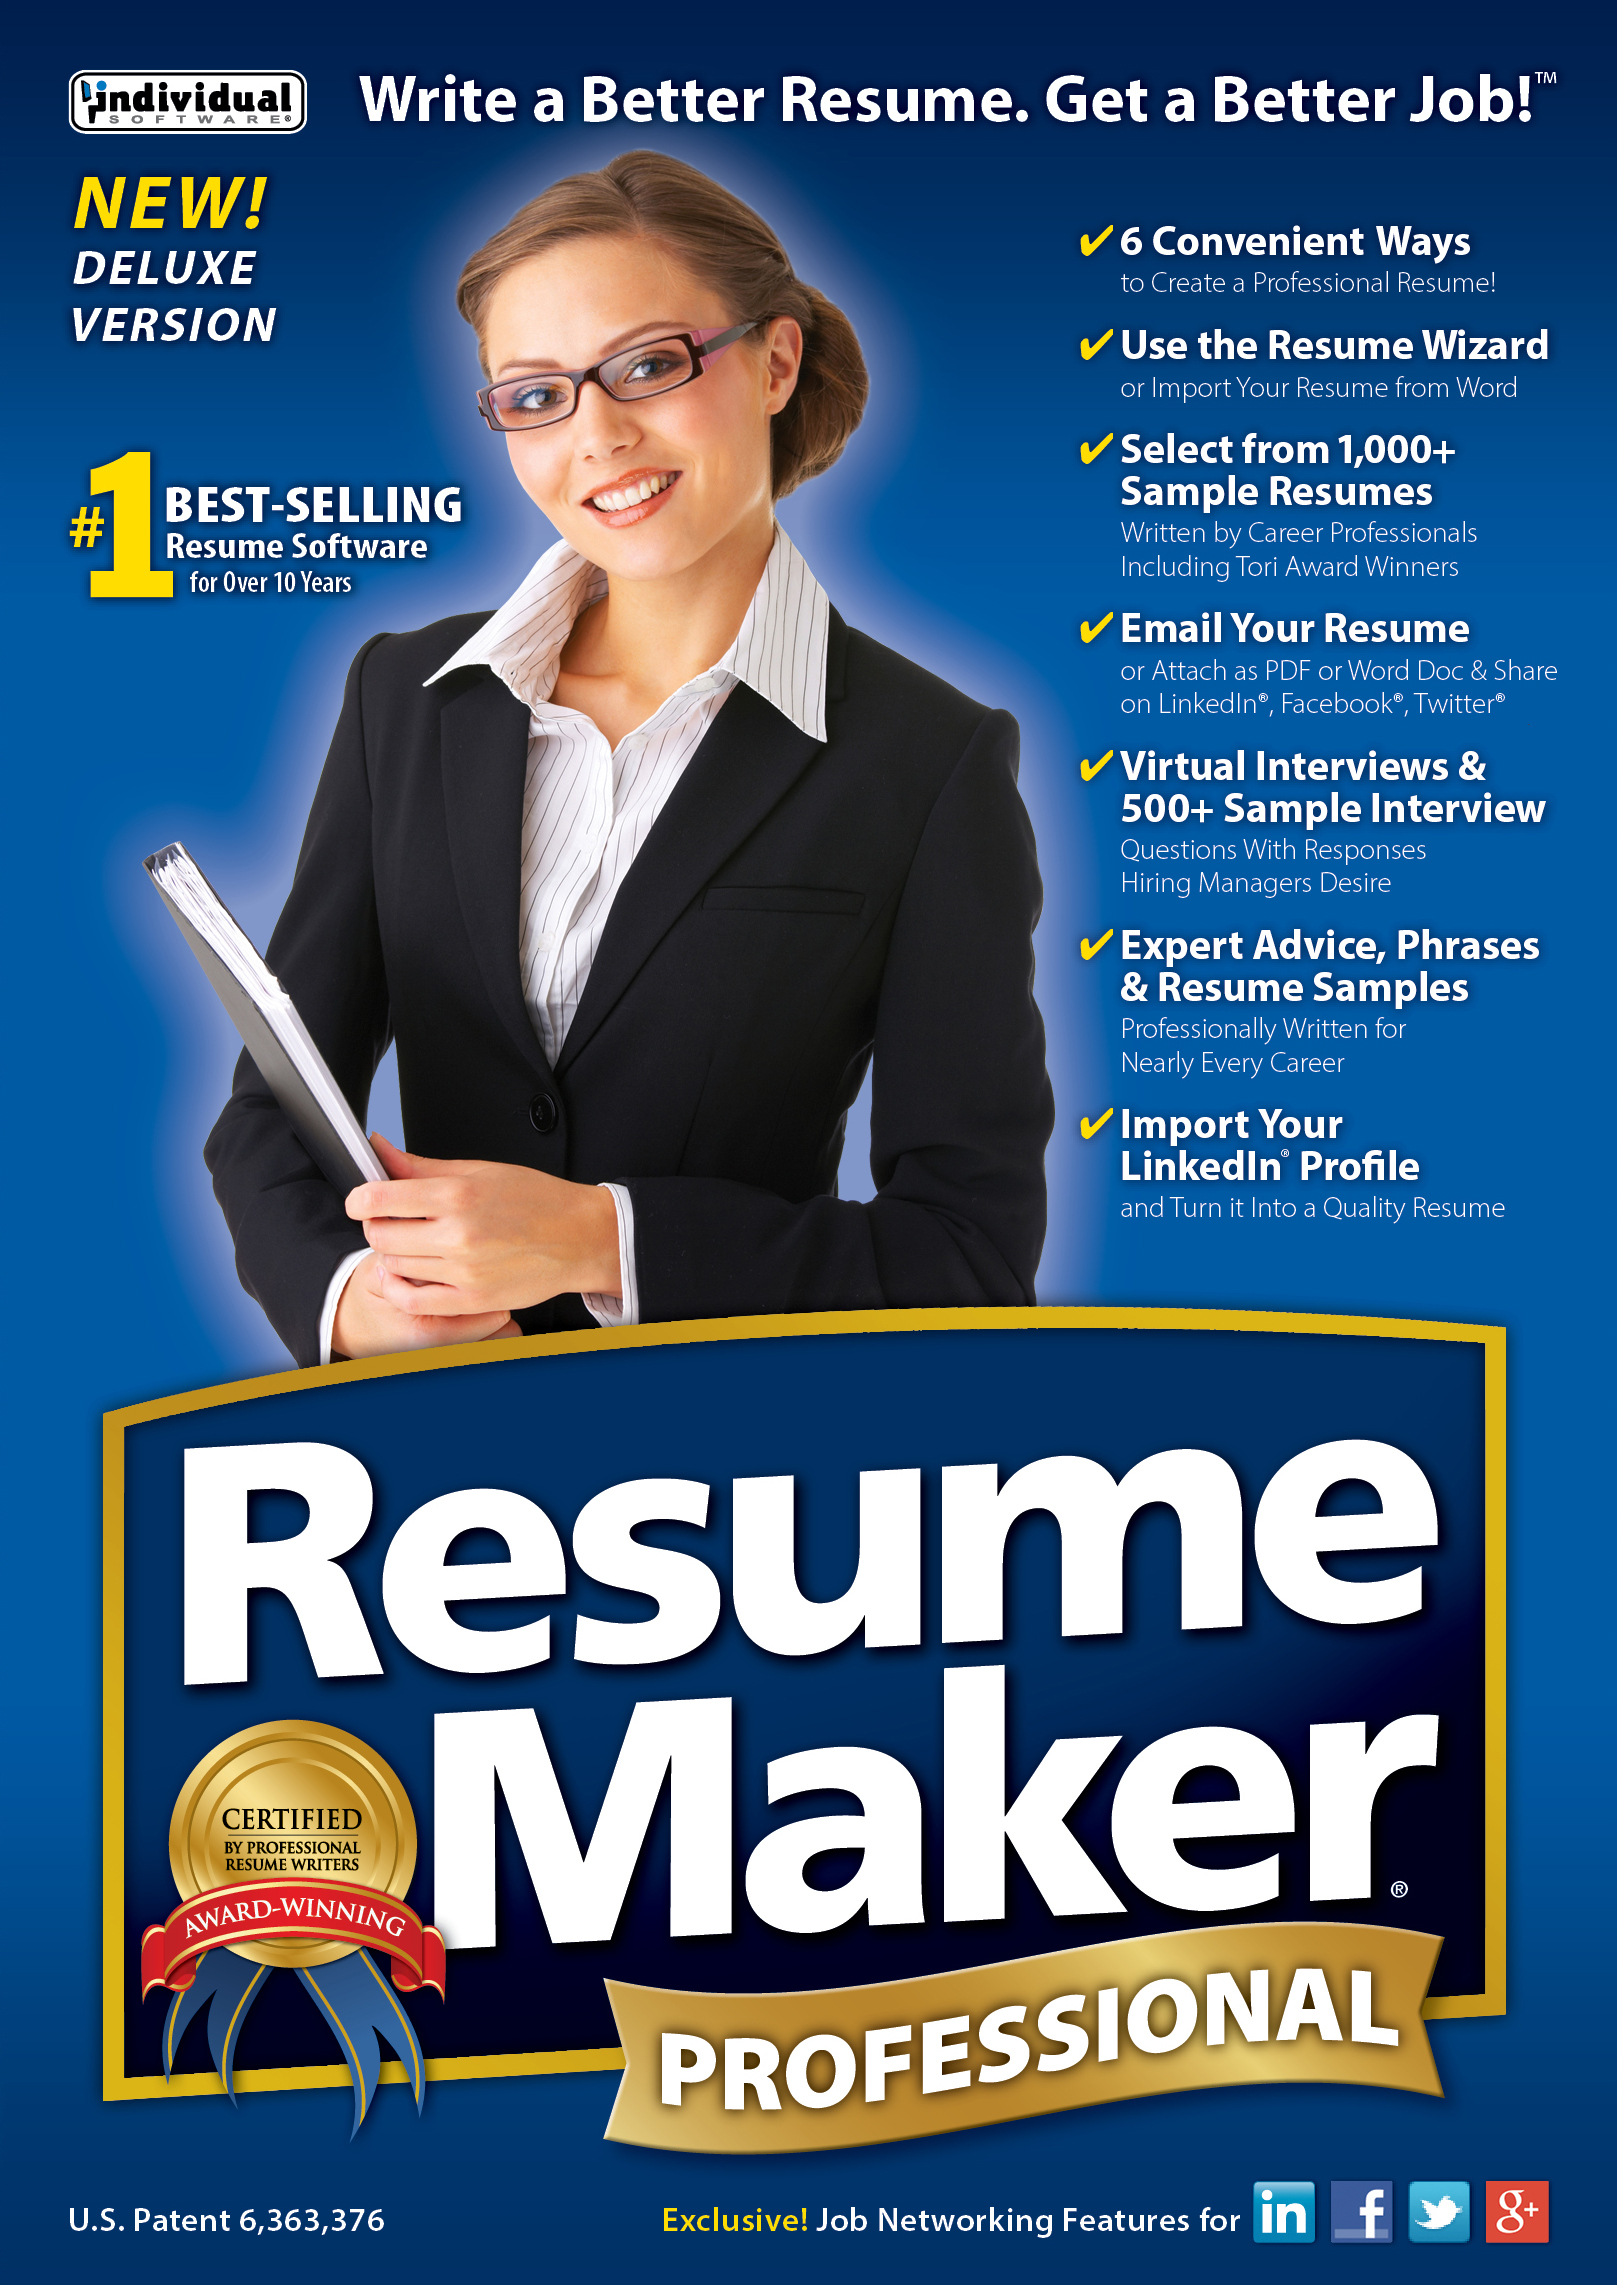 amazoncom resumemaker professional deluxe 19 download software - Resume Maker Professional Software Free Download